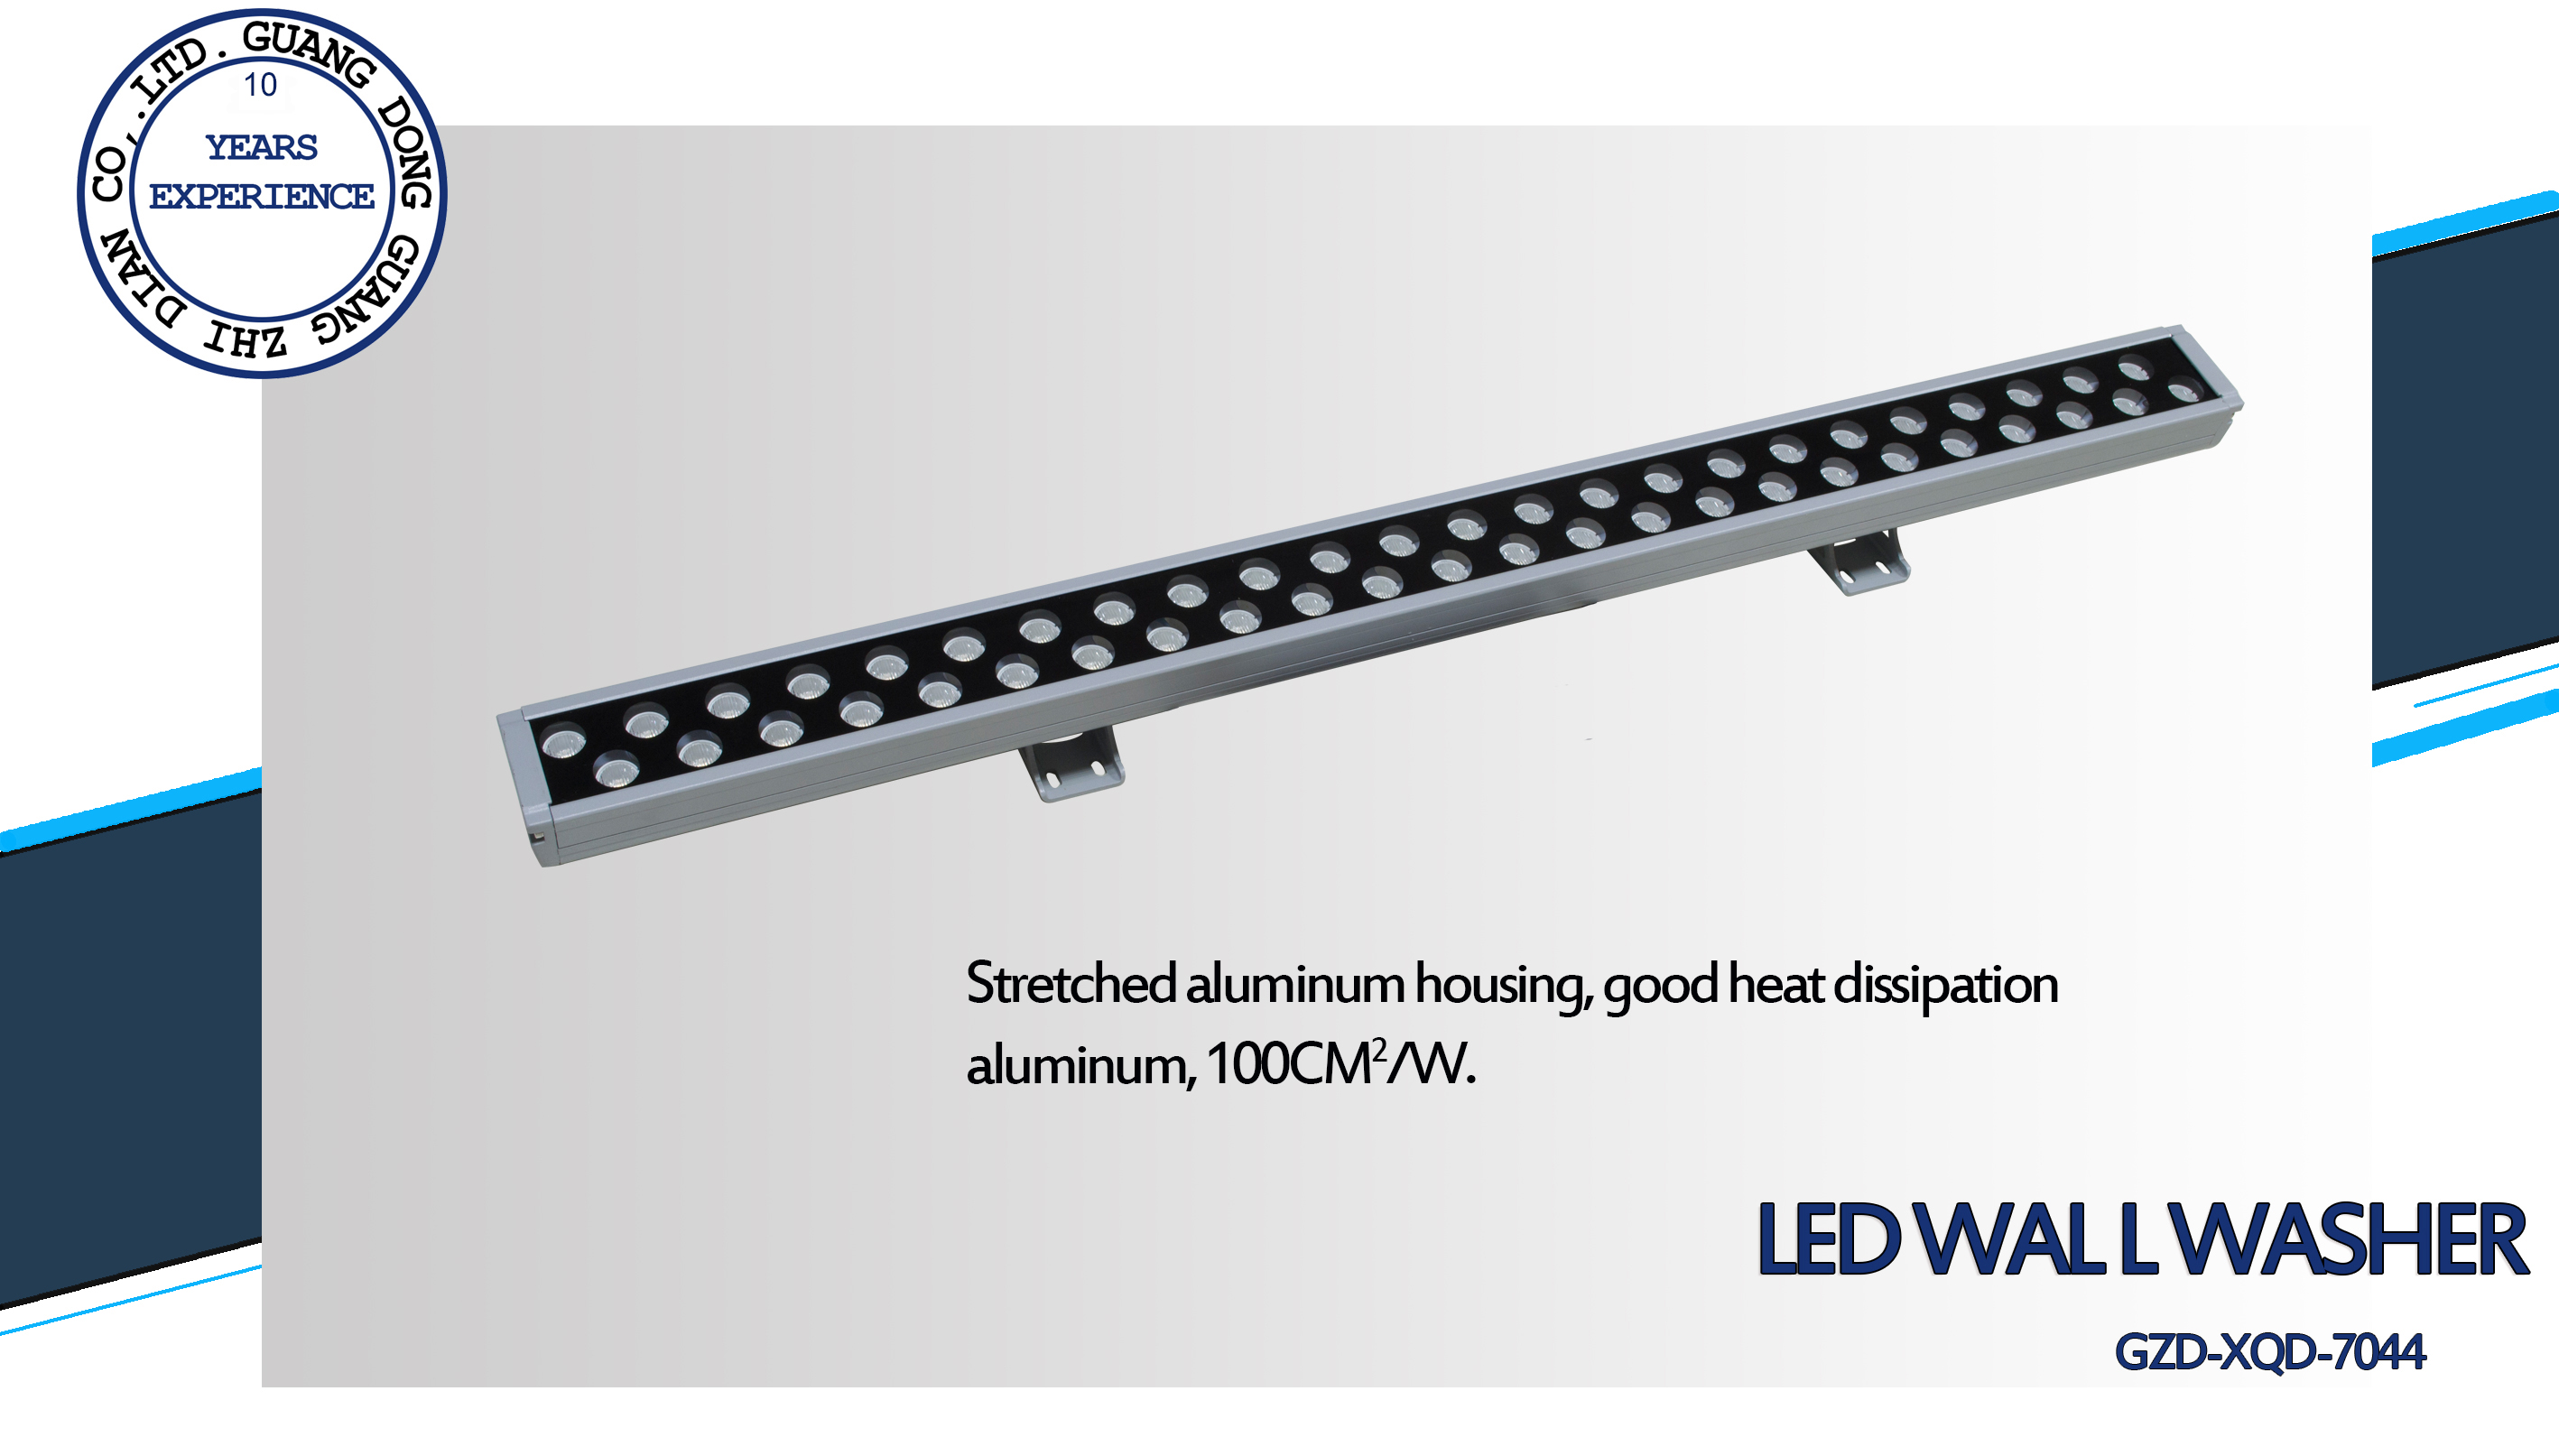 1 led wall washer